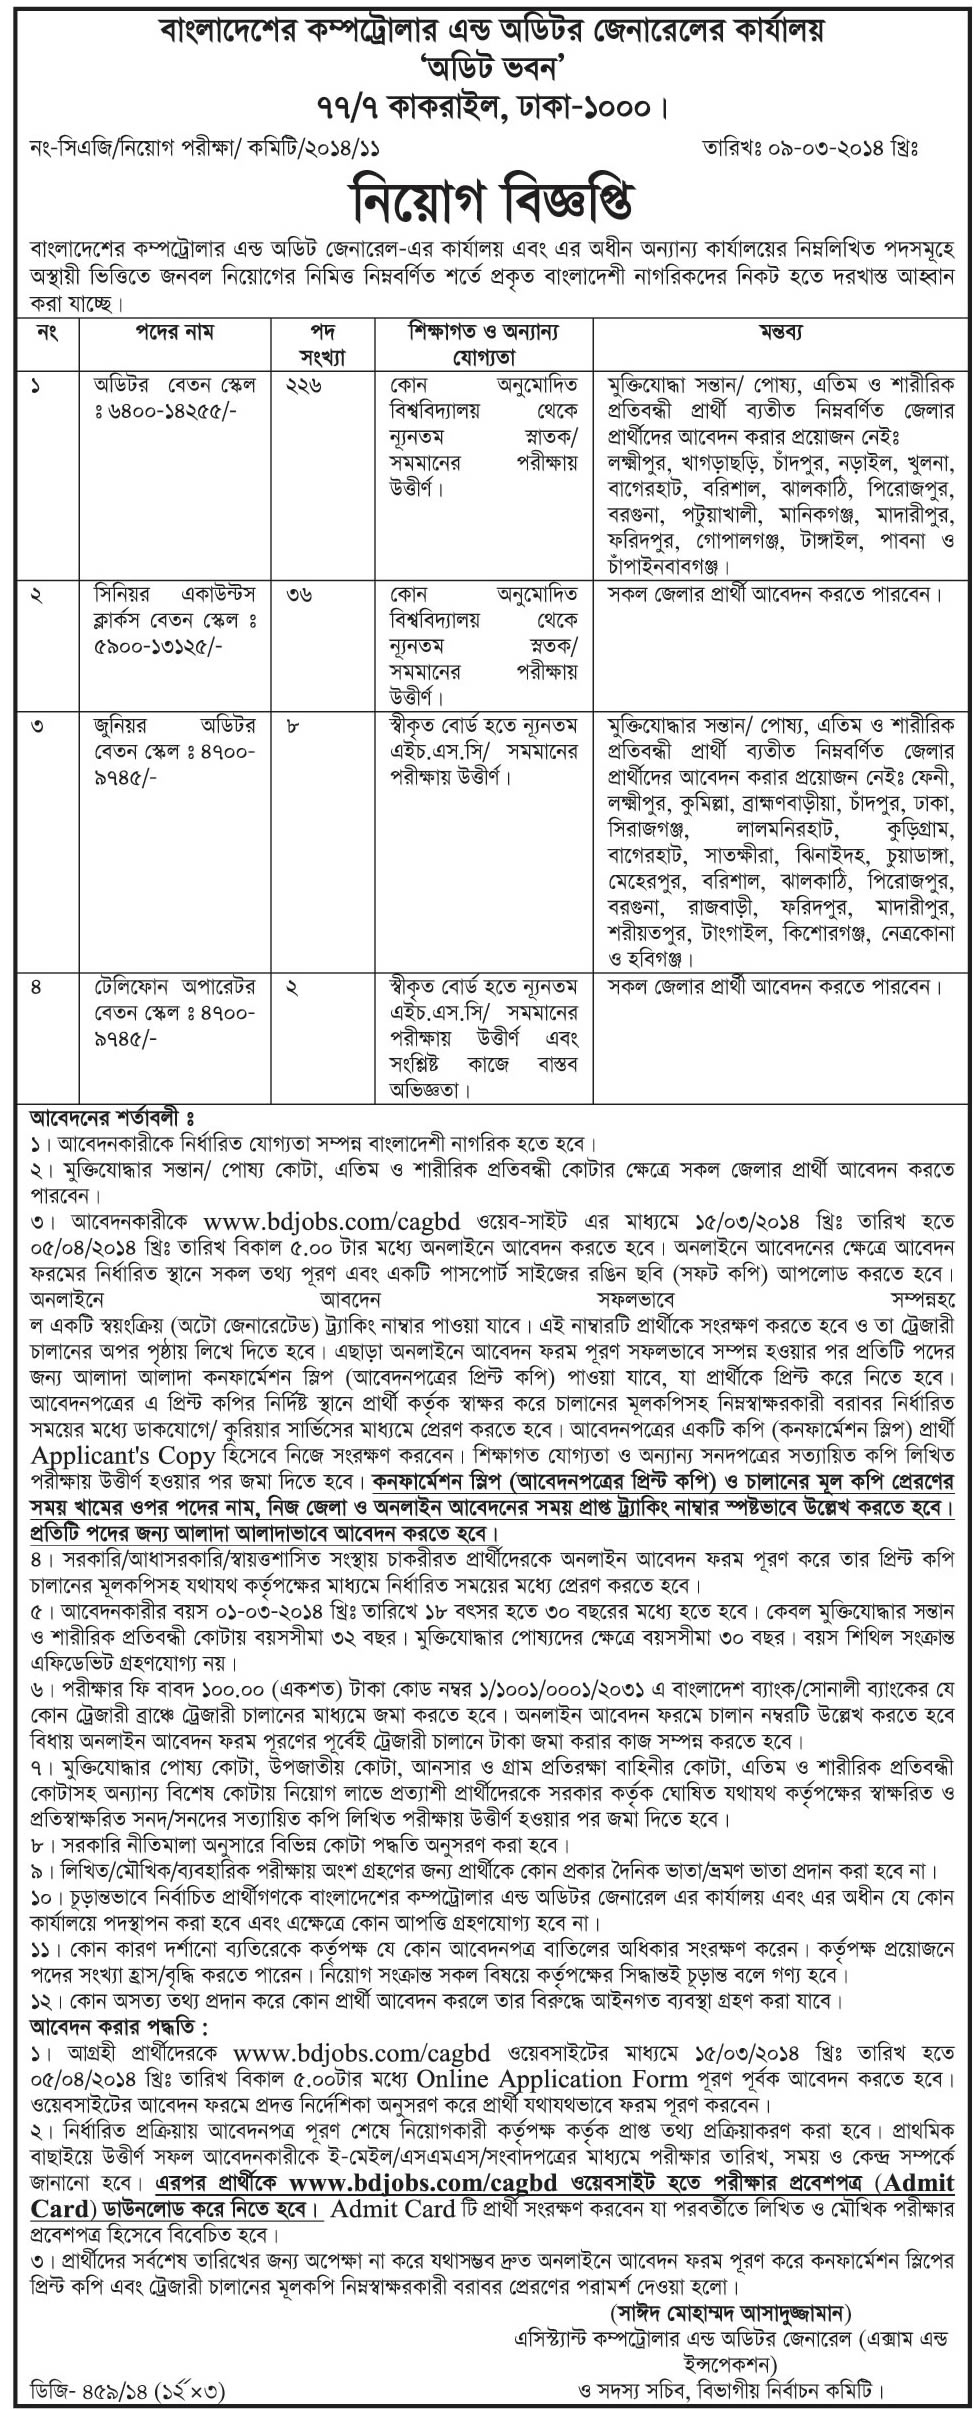 Bangladesh Comptroller & Auditor General Job Application Last Date On 5 April 2014